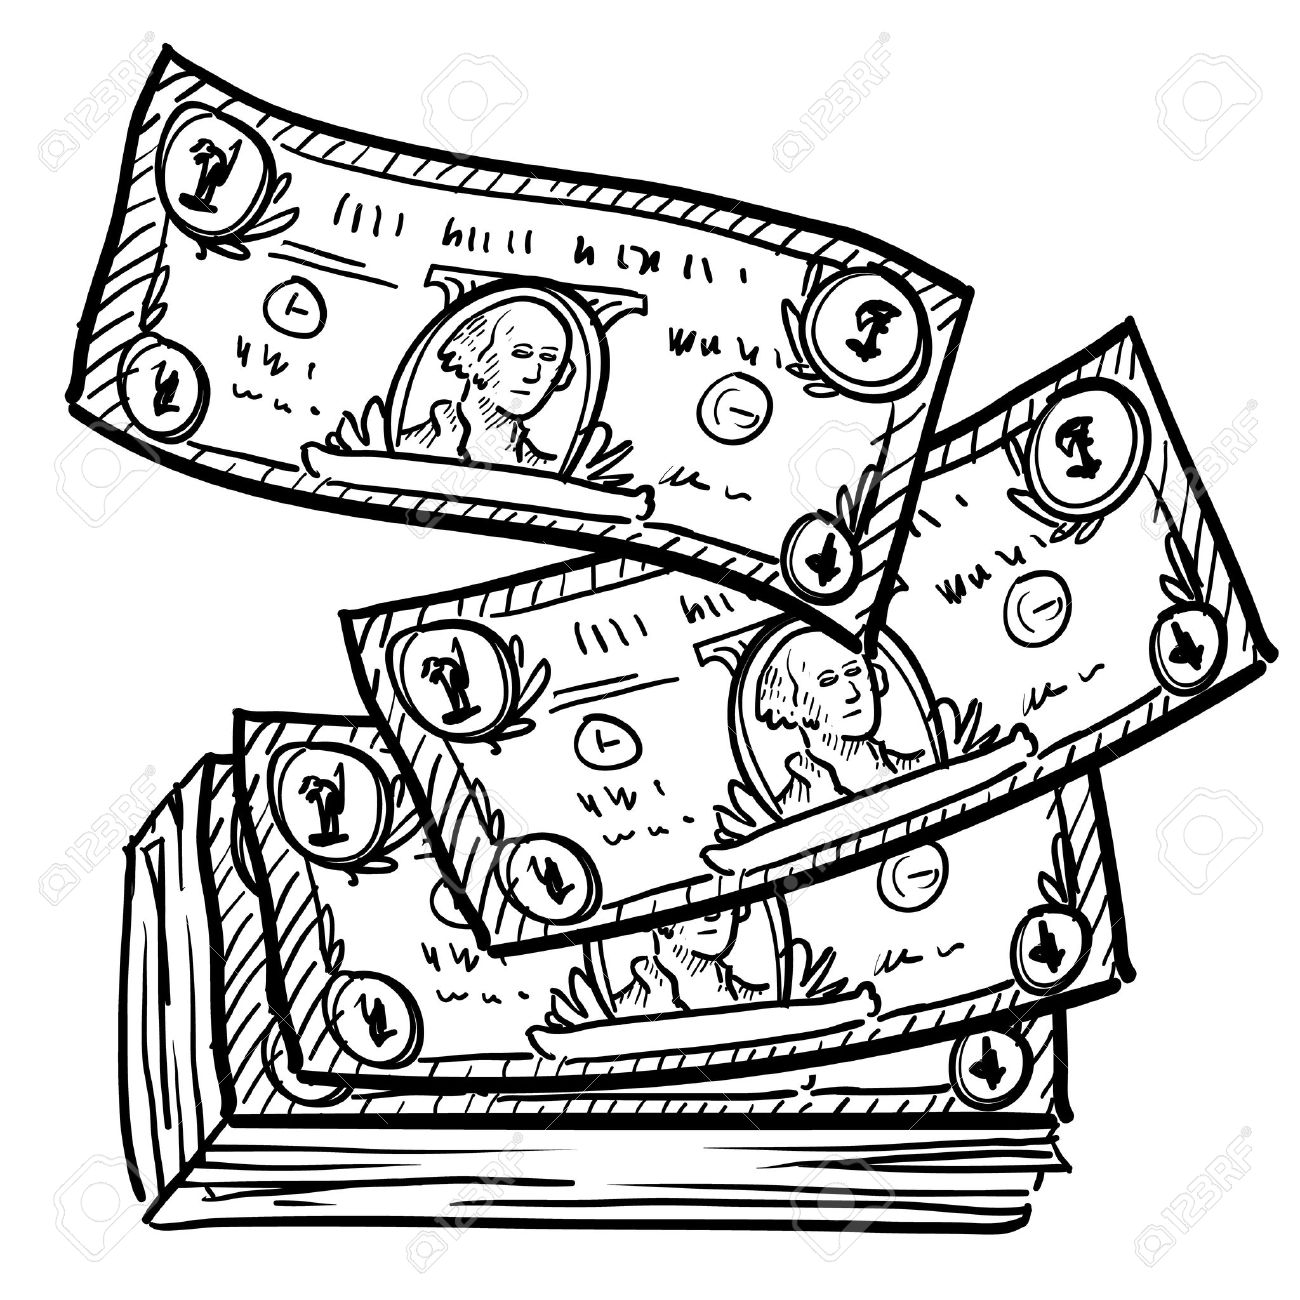 Doodle Style Paper Currency Or Dollar Bills Illustration In Vector.